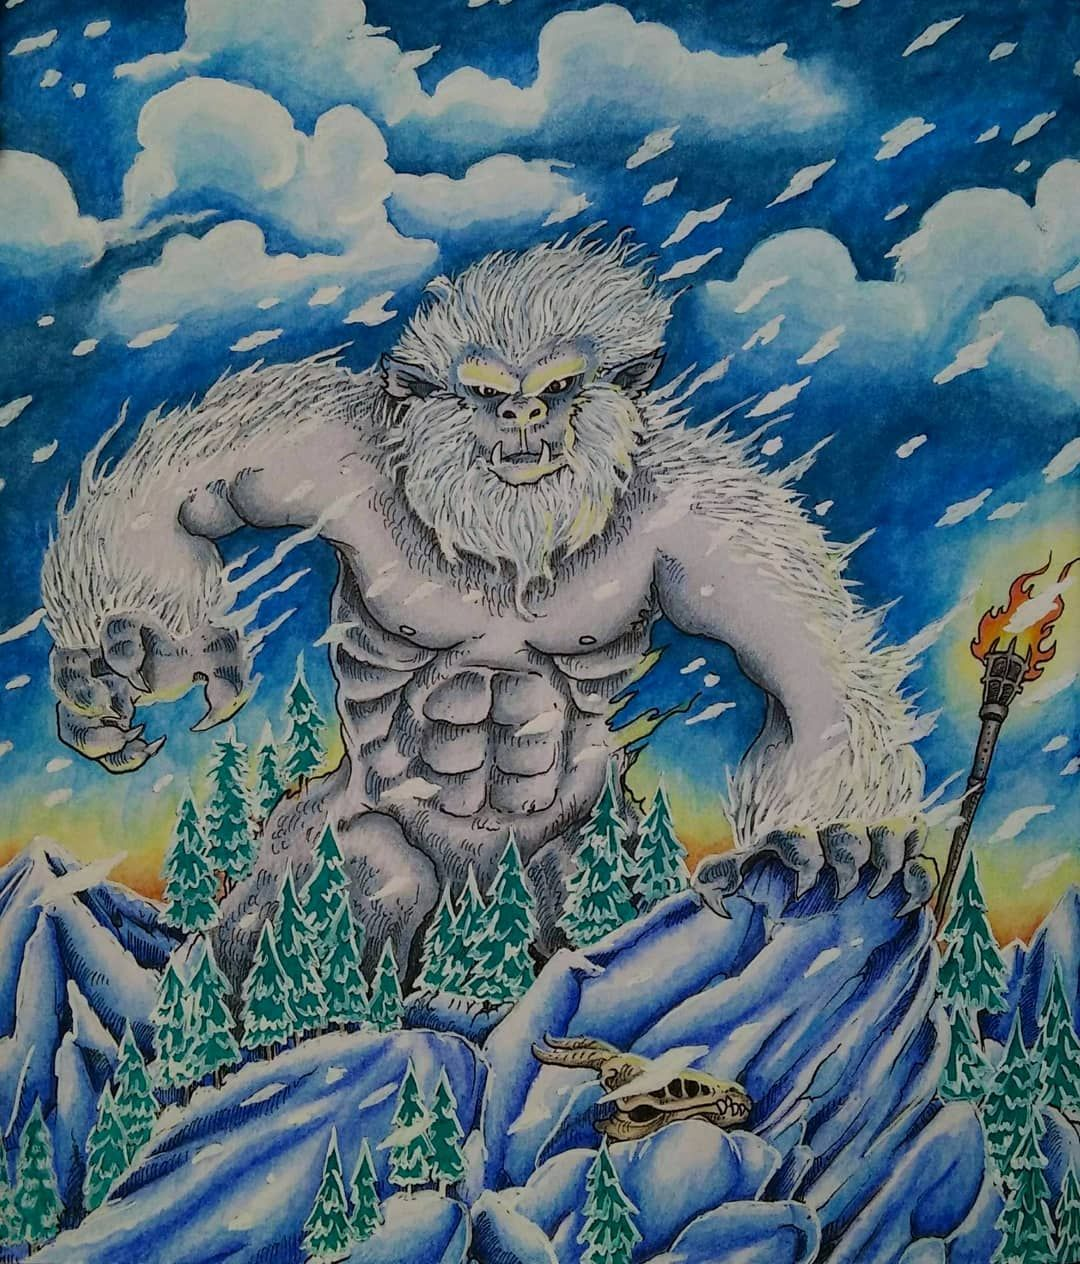 My Formidable Yeti From Mythomorphia By Kerbyrosanes I M Sure He Is Good Guy But He Is Angry Now Because He S Cold And T Coloring Books Artwork Art